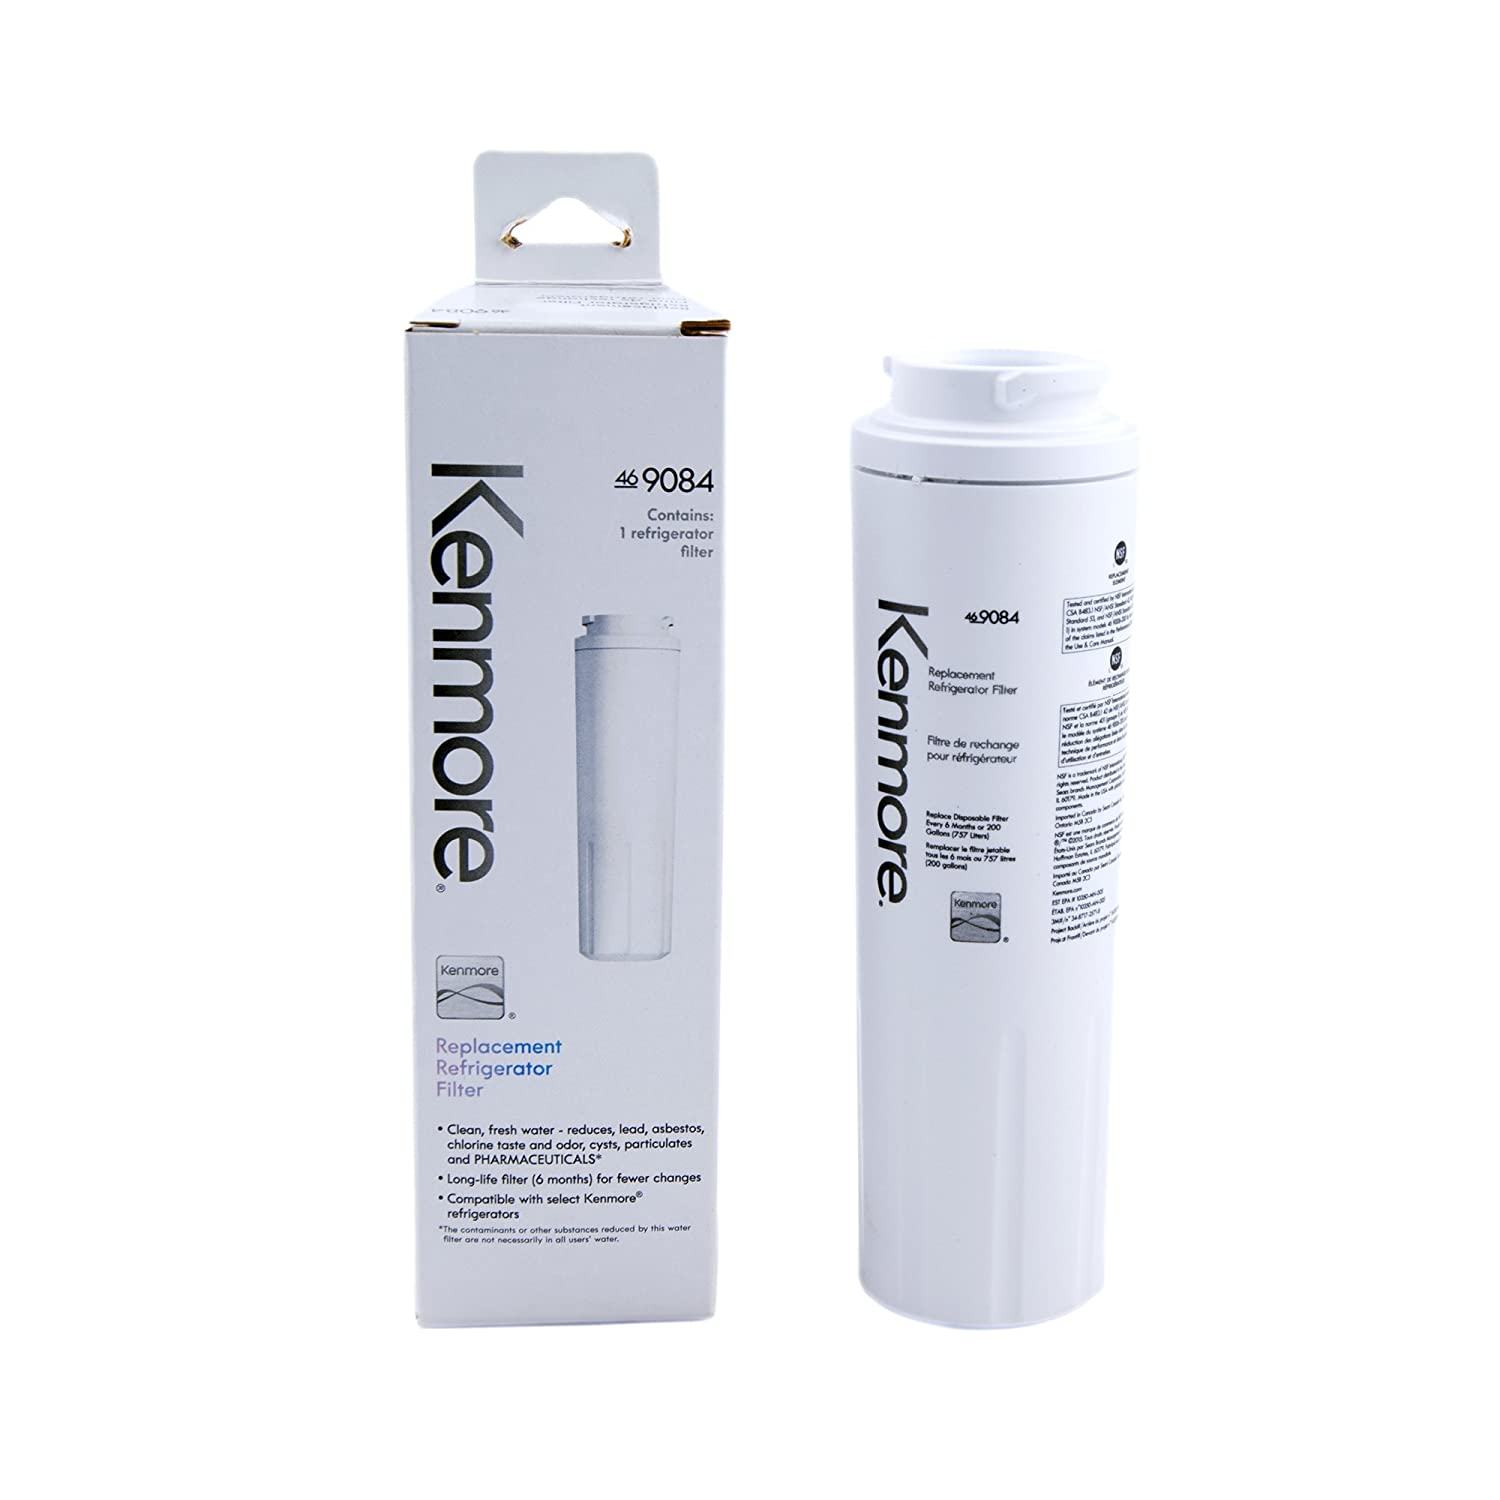 Amazon Kenmore 9084 9084 Refrigerator Water Filter white Home